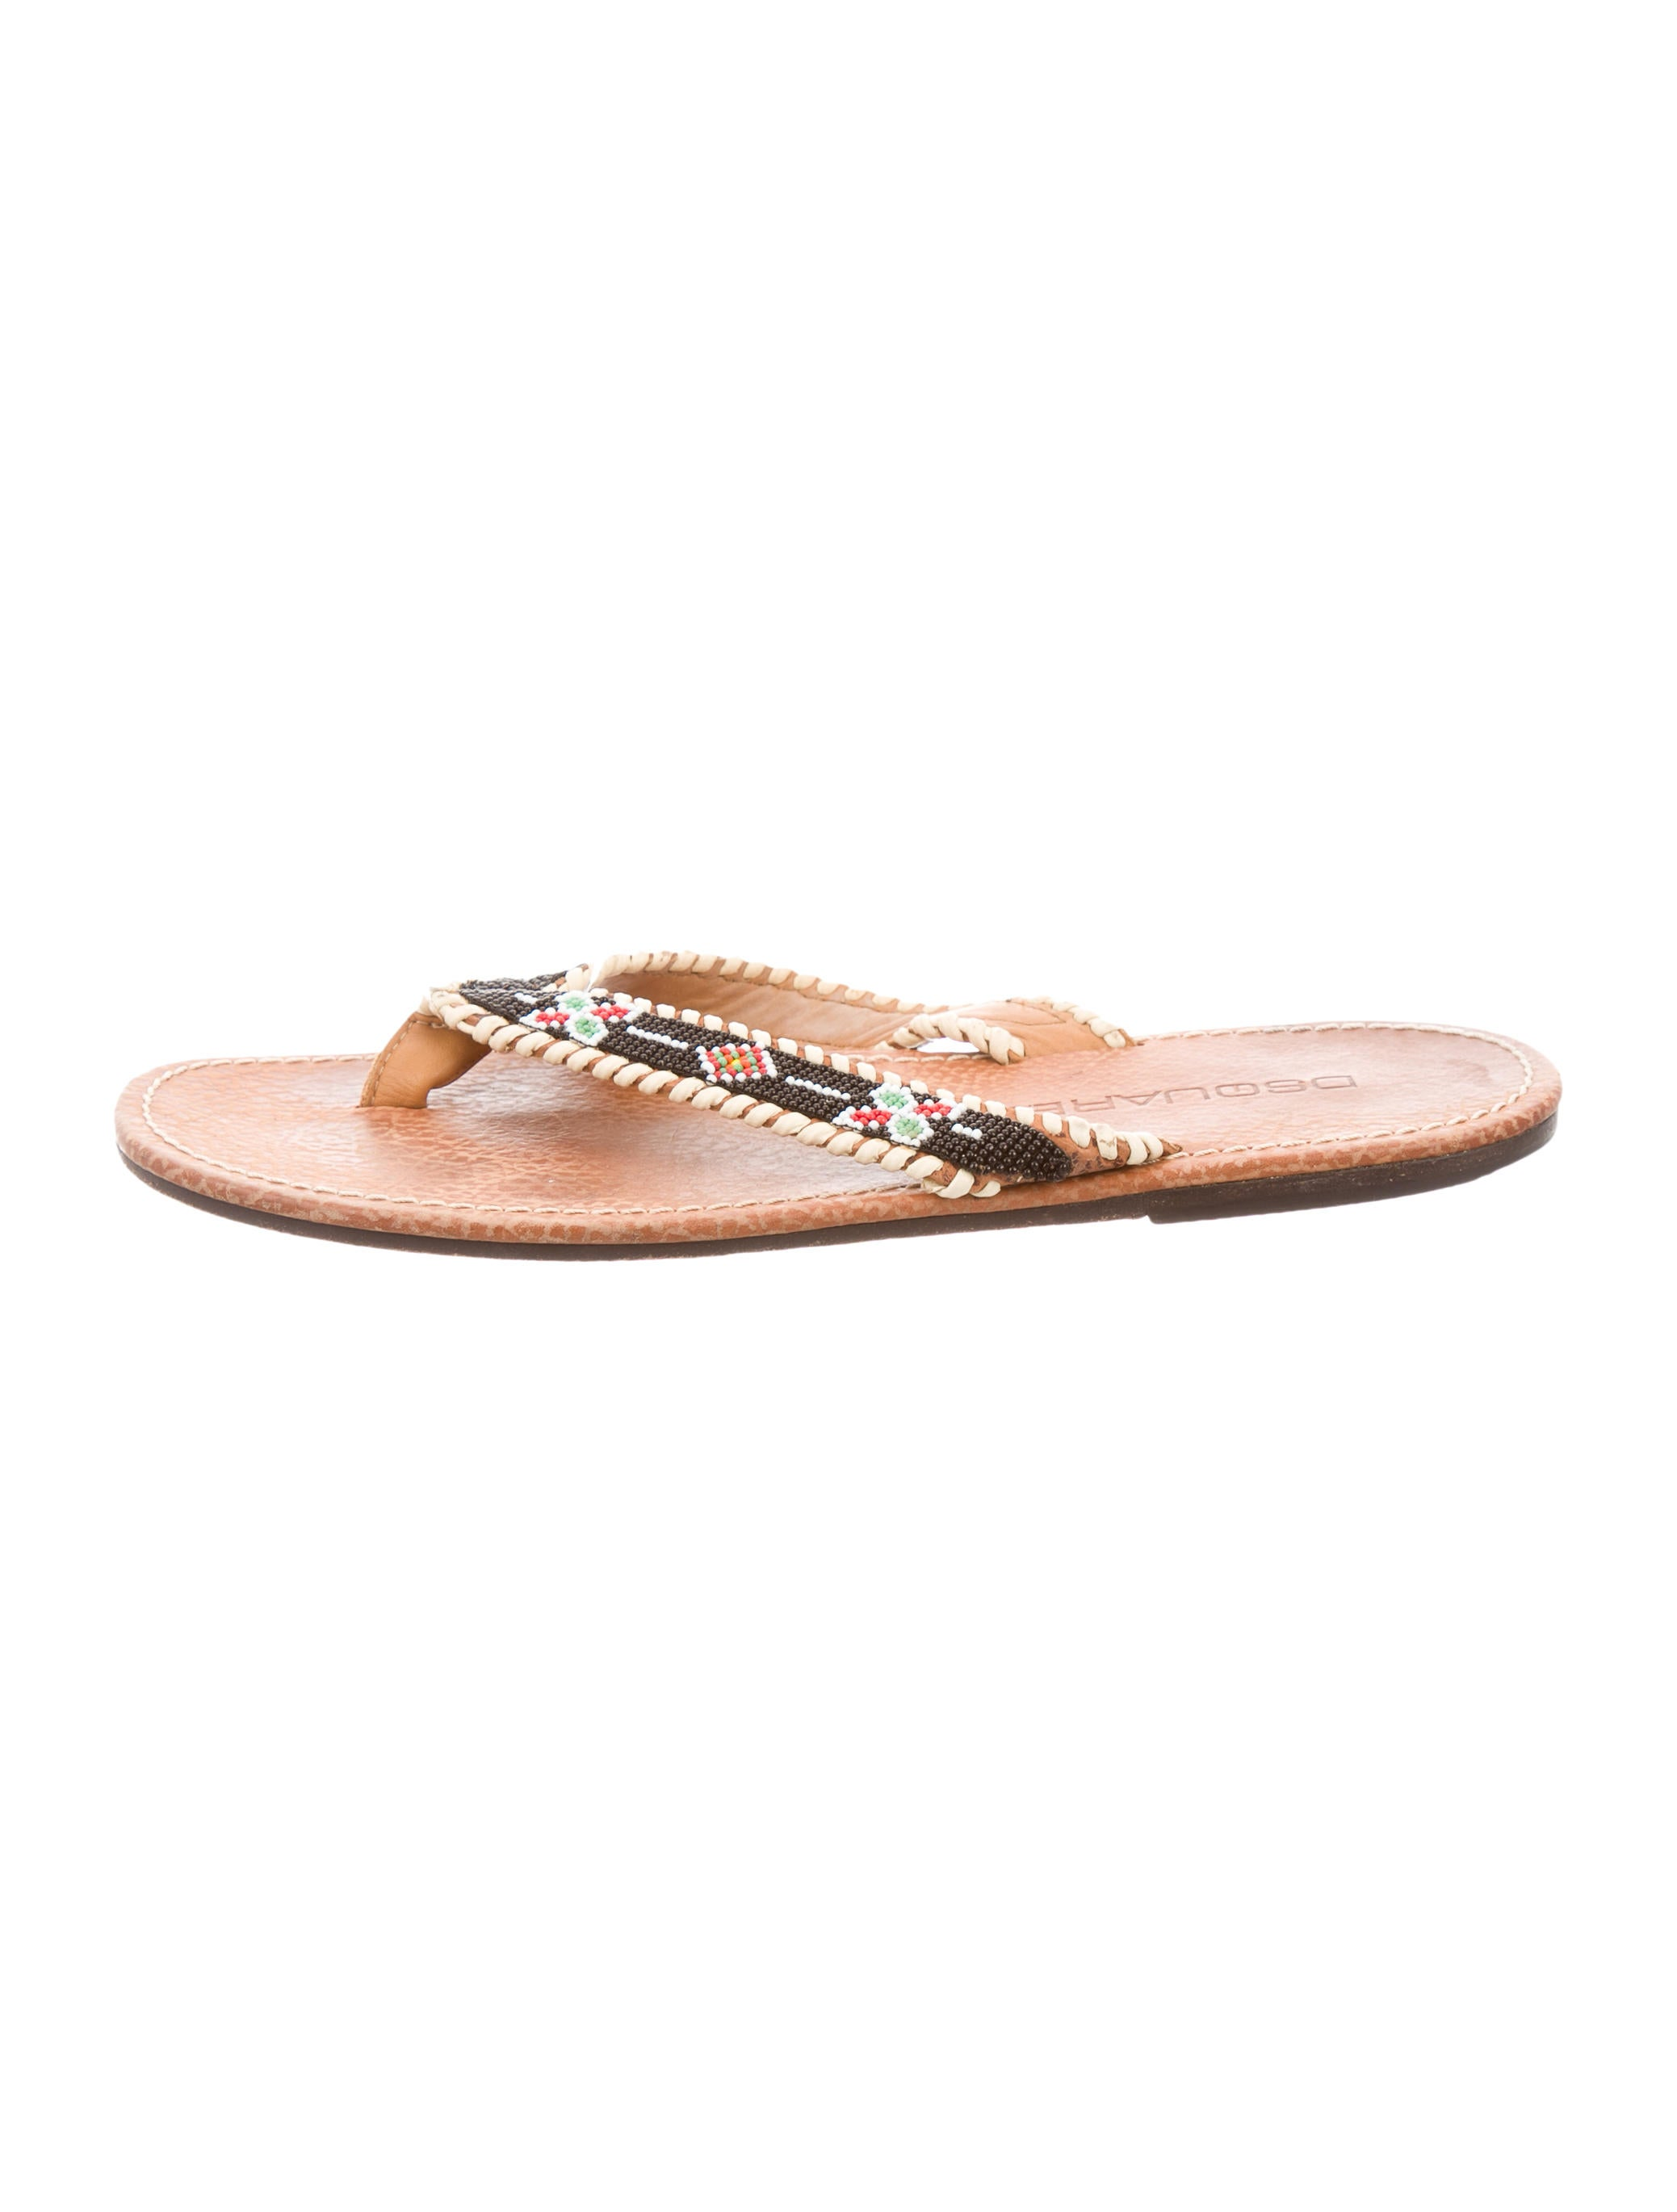 dsquared 178 leather beaded slide sandals shoes dsq23228